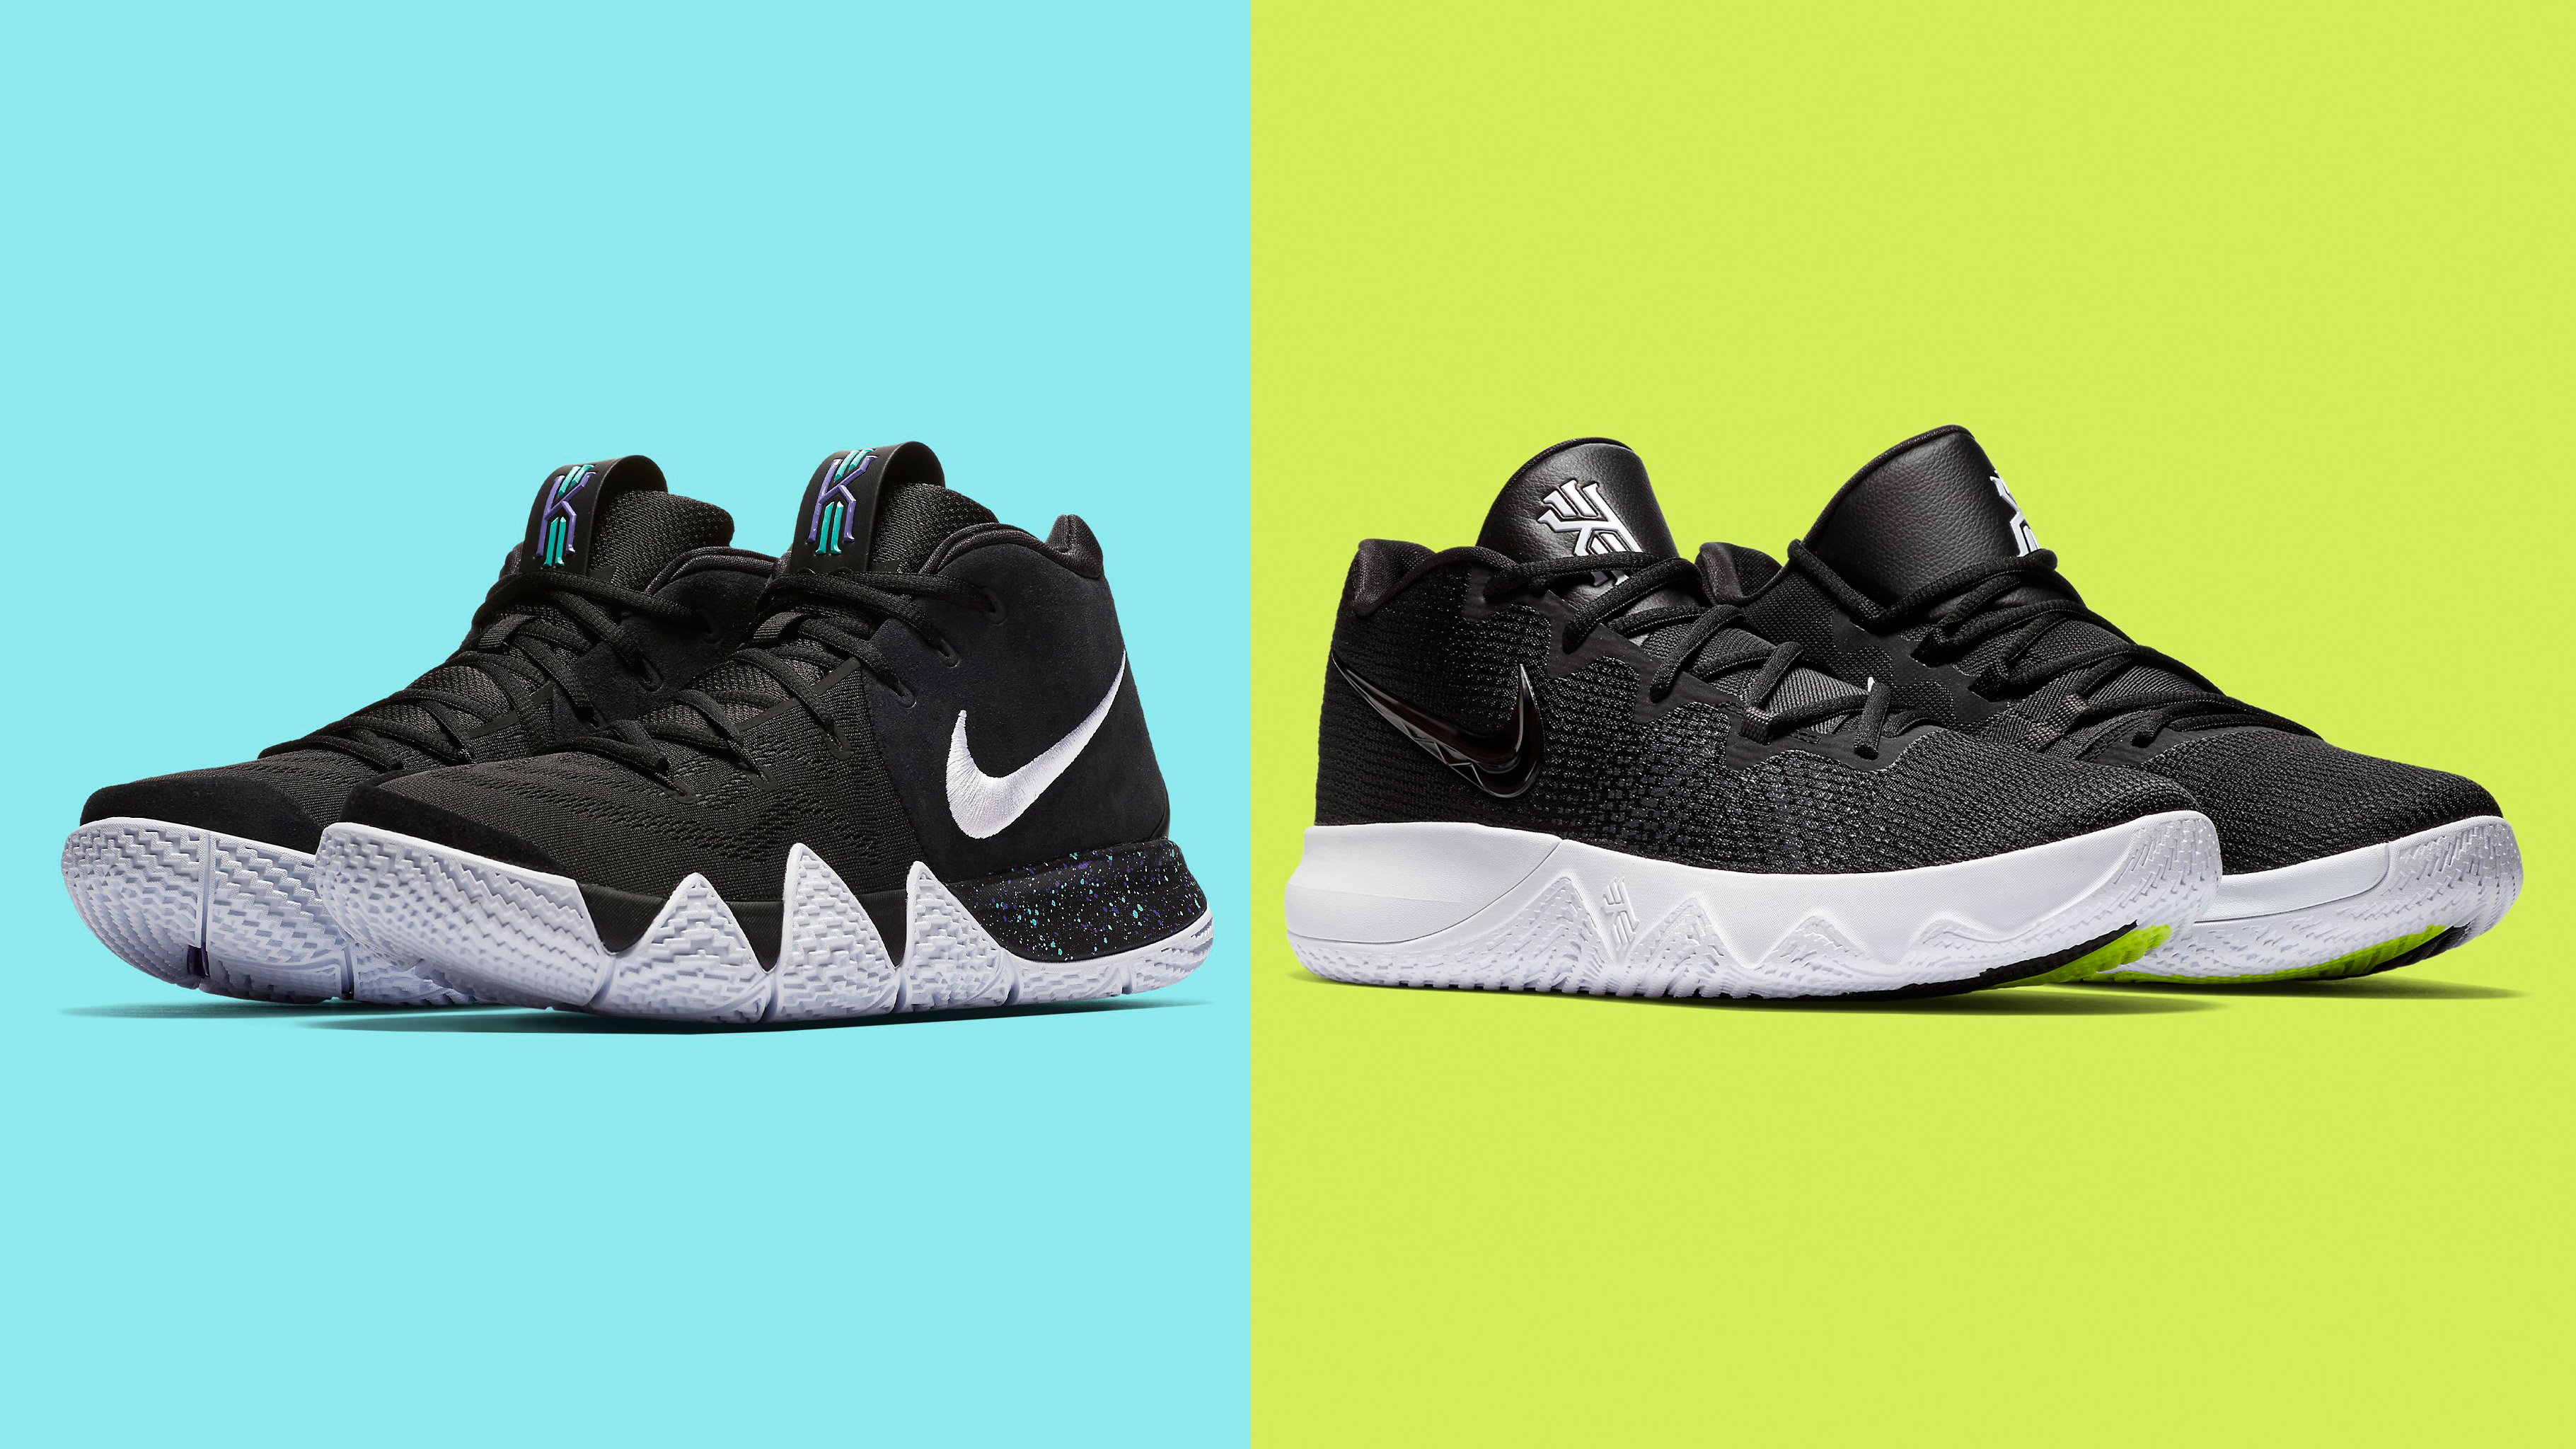 cheap for discount 4a6bd d29e2 Nike Kyrie 4 vs. Nike Kyrie Flytrap